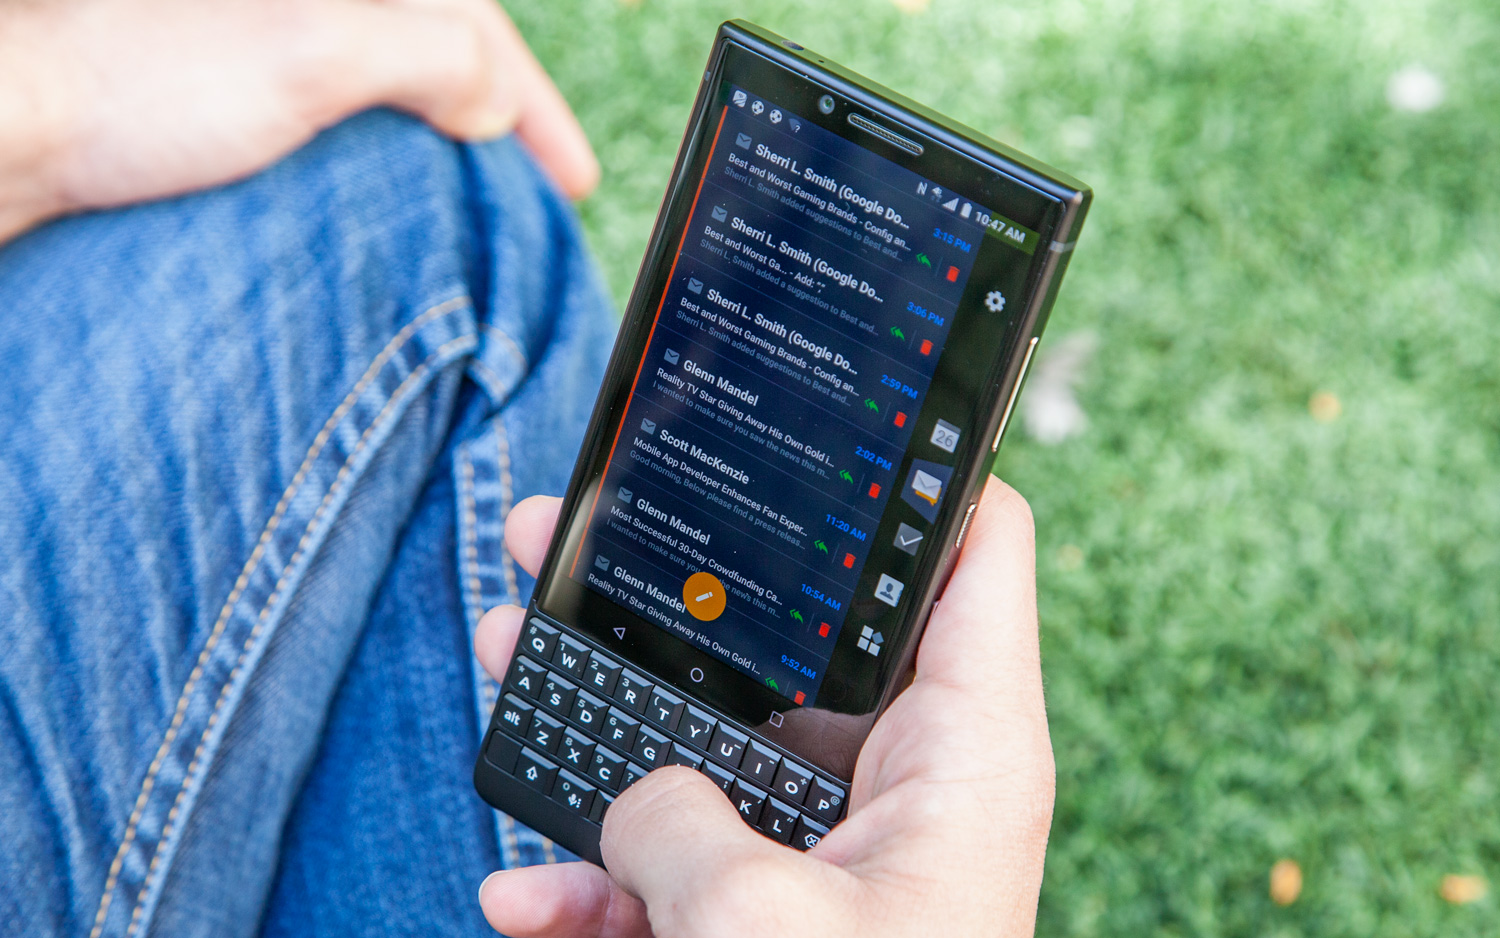 BlackBerry Key2 - Full Review and Benchmarks | Tom's Guide